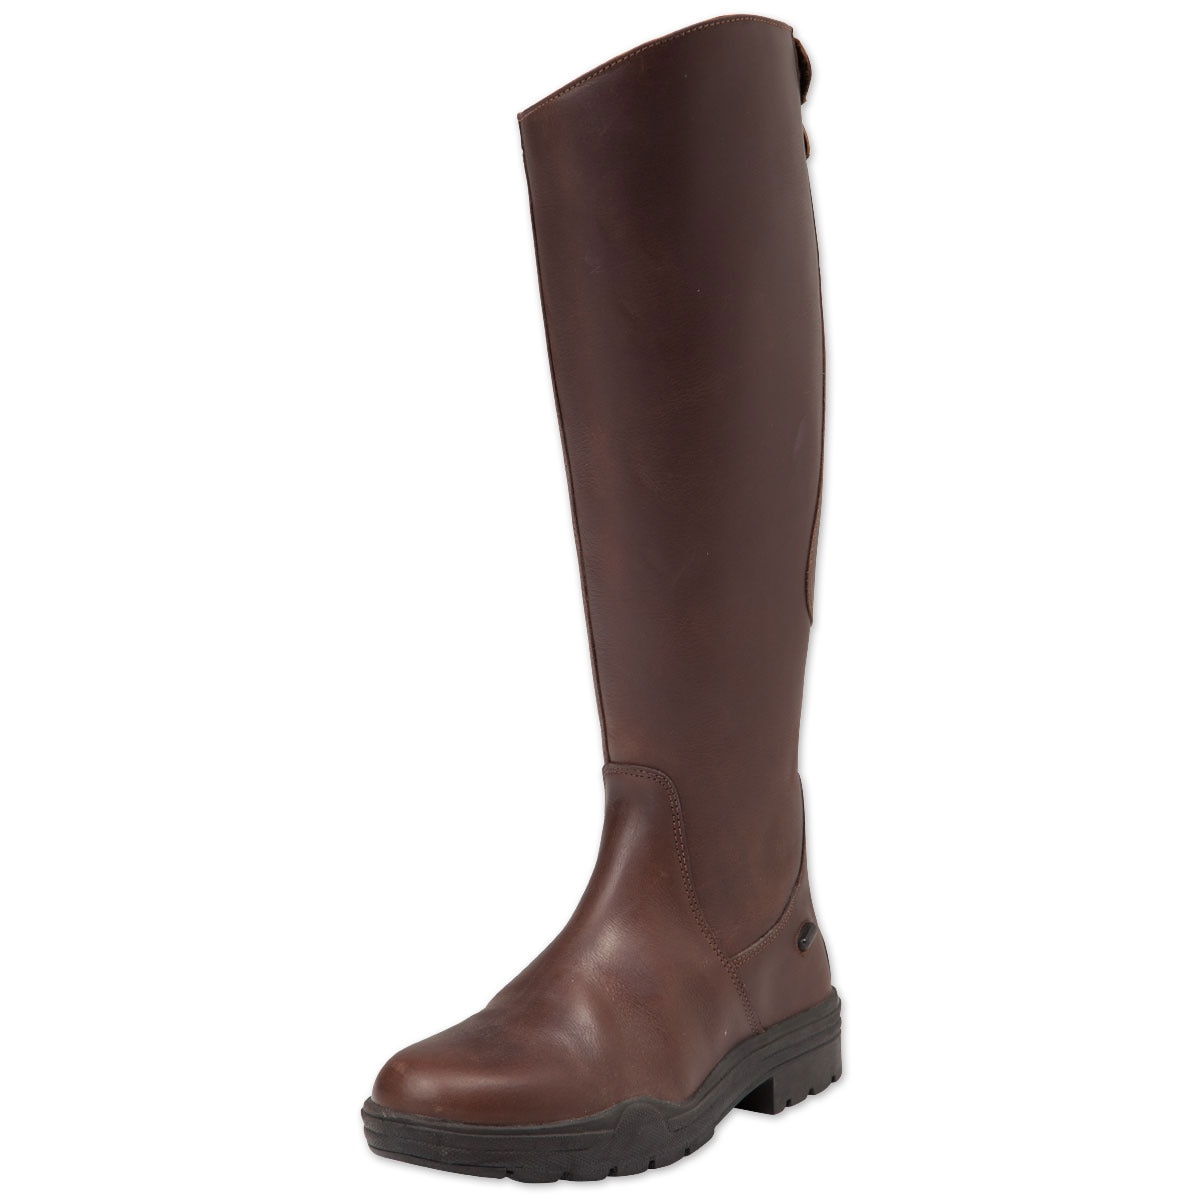 Solstice Tall Leather Boot by SmartPak